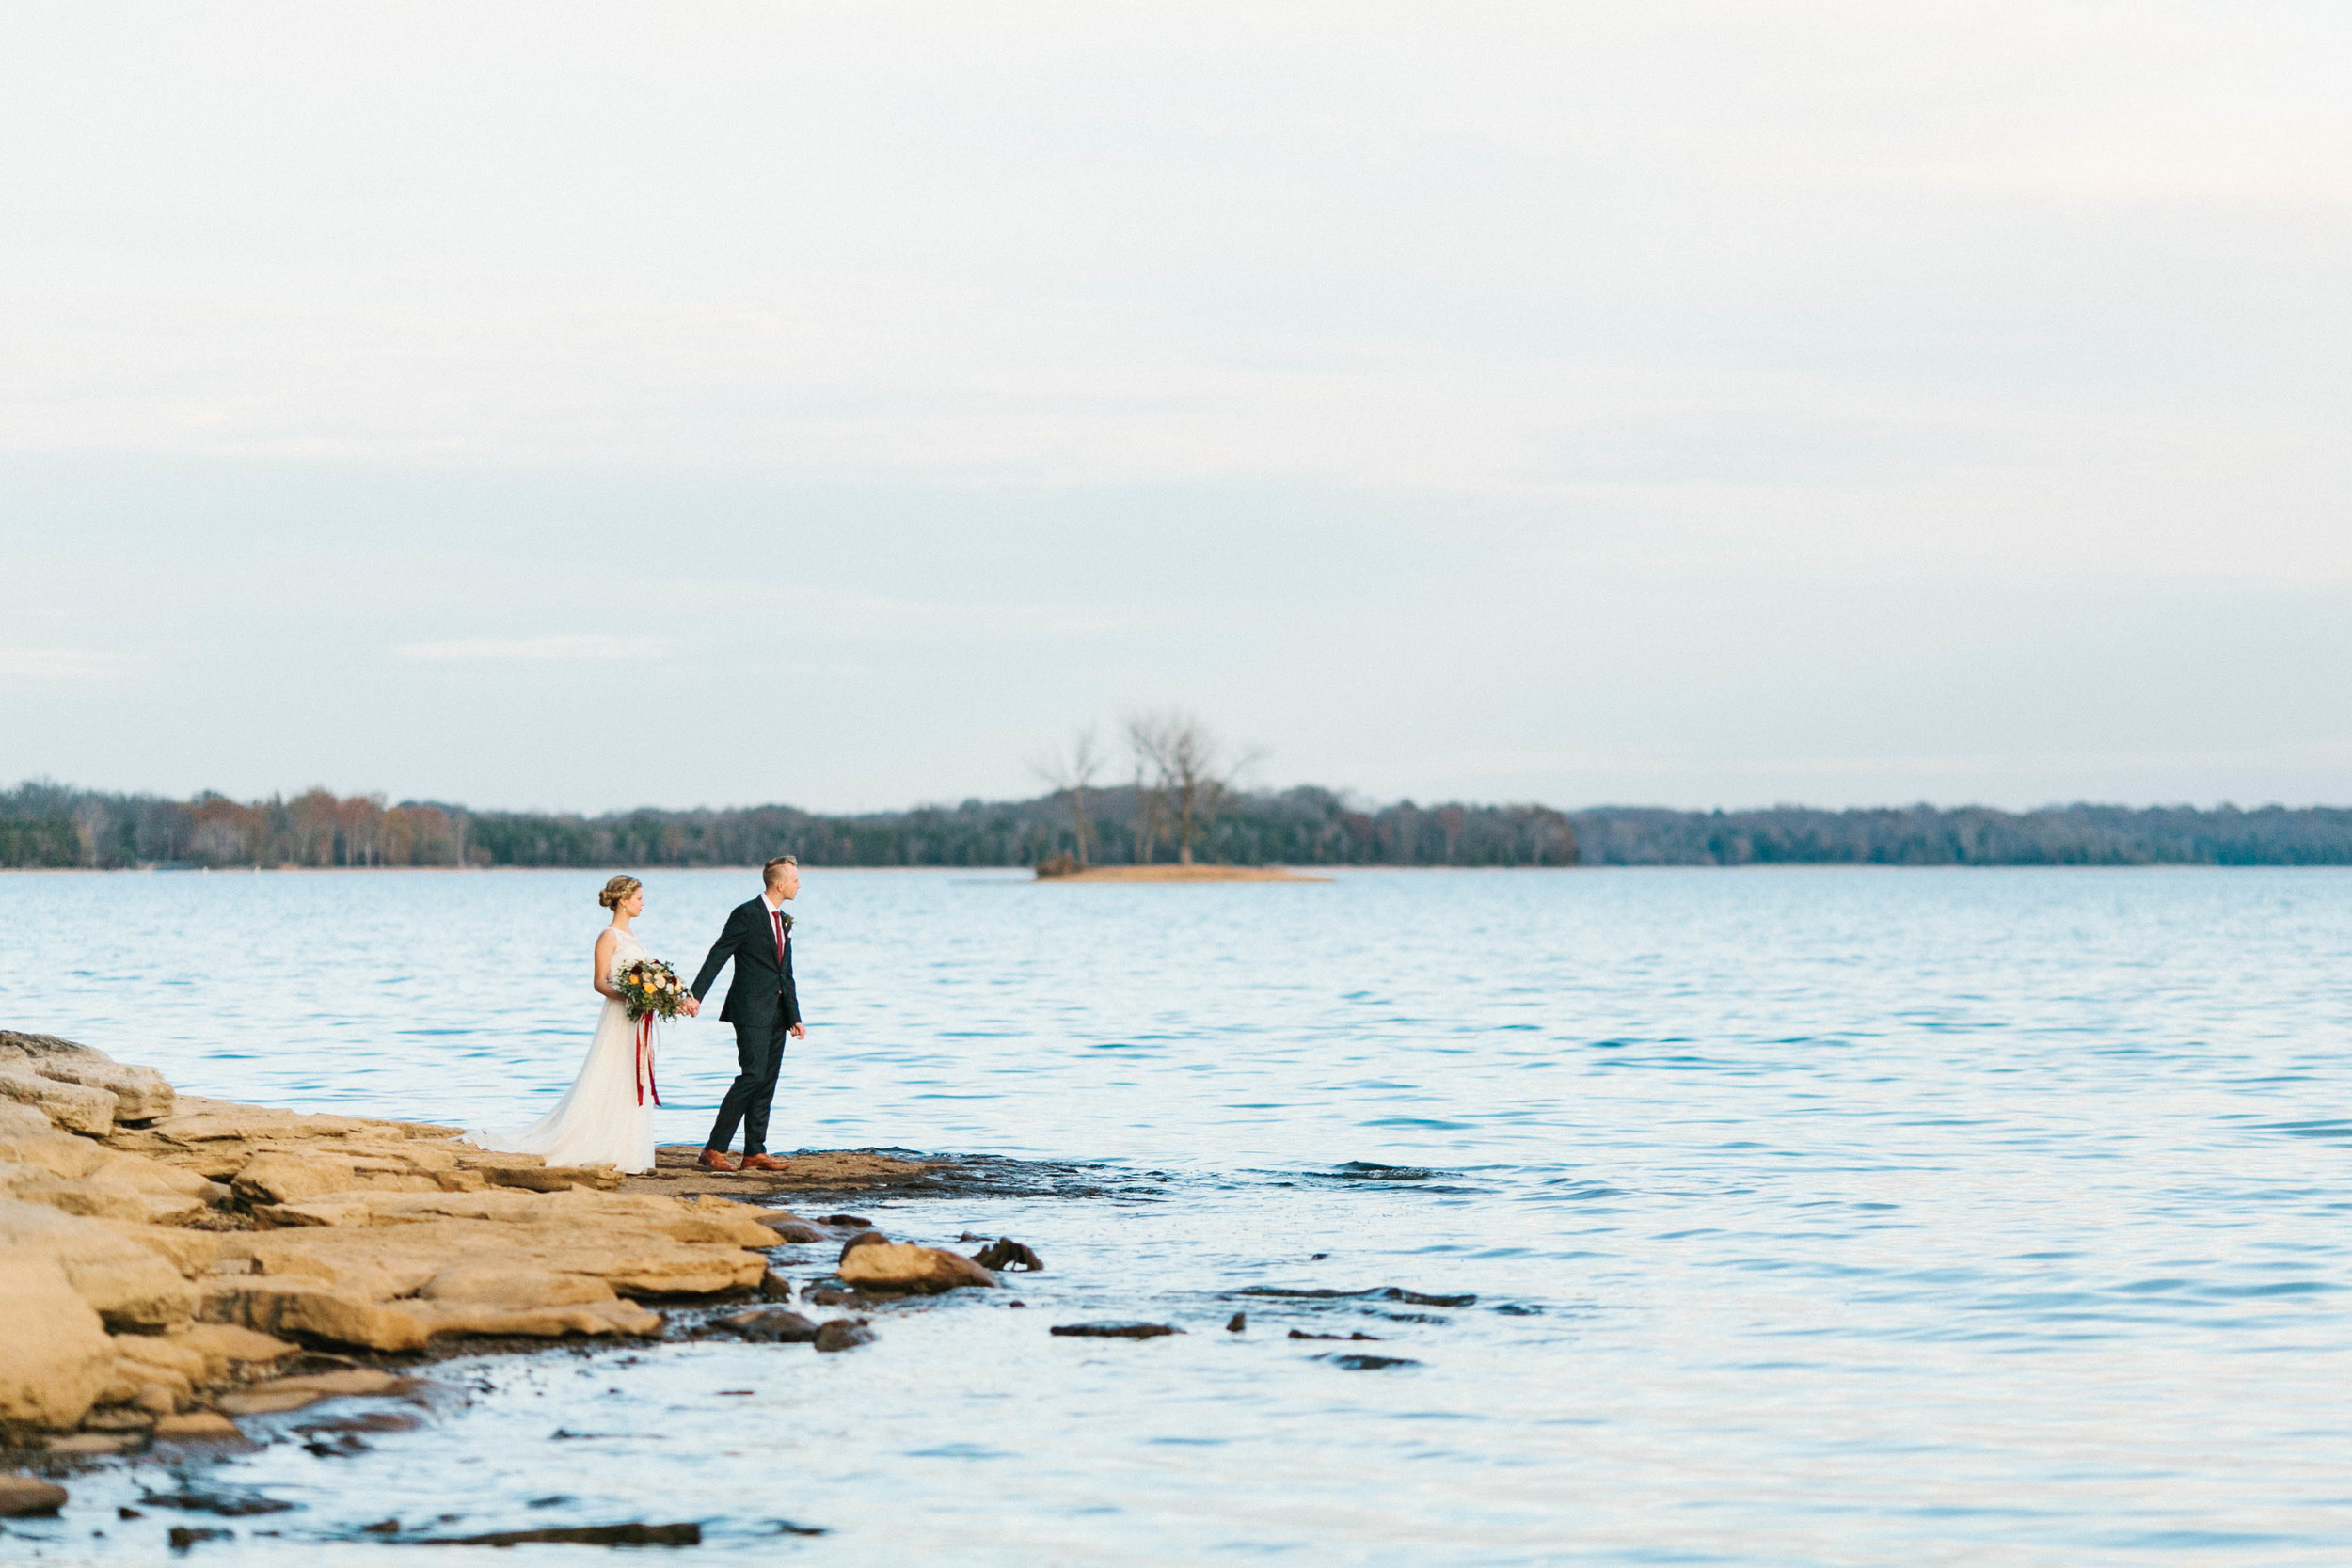 Bridal Portraits by the lake // Destination Floral Design